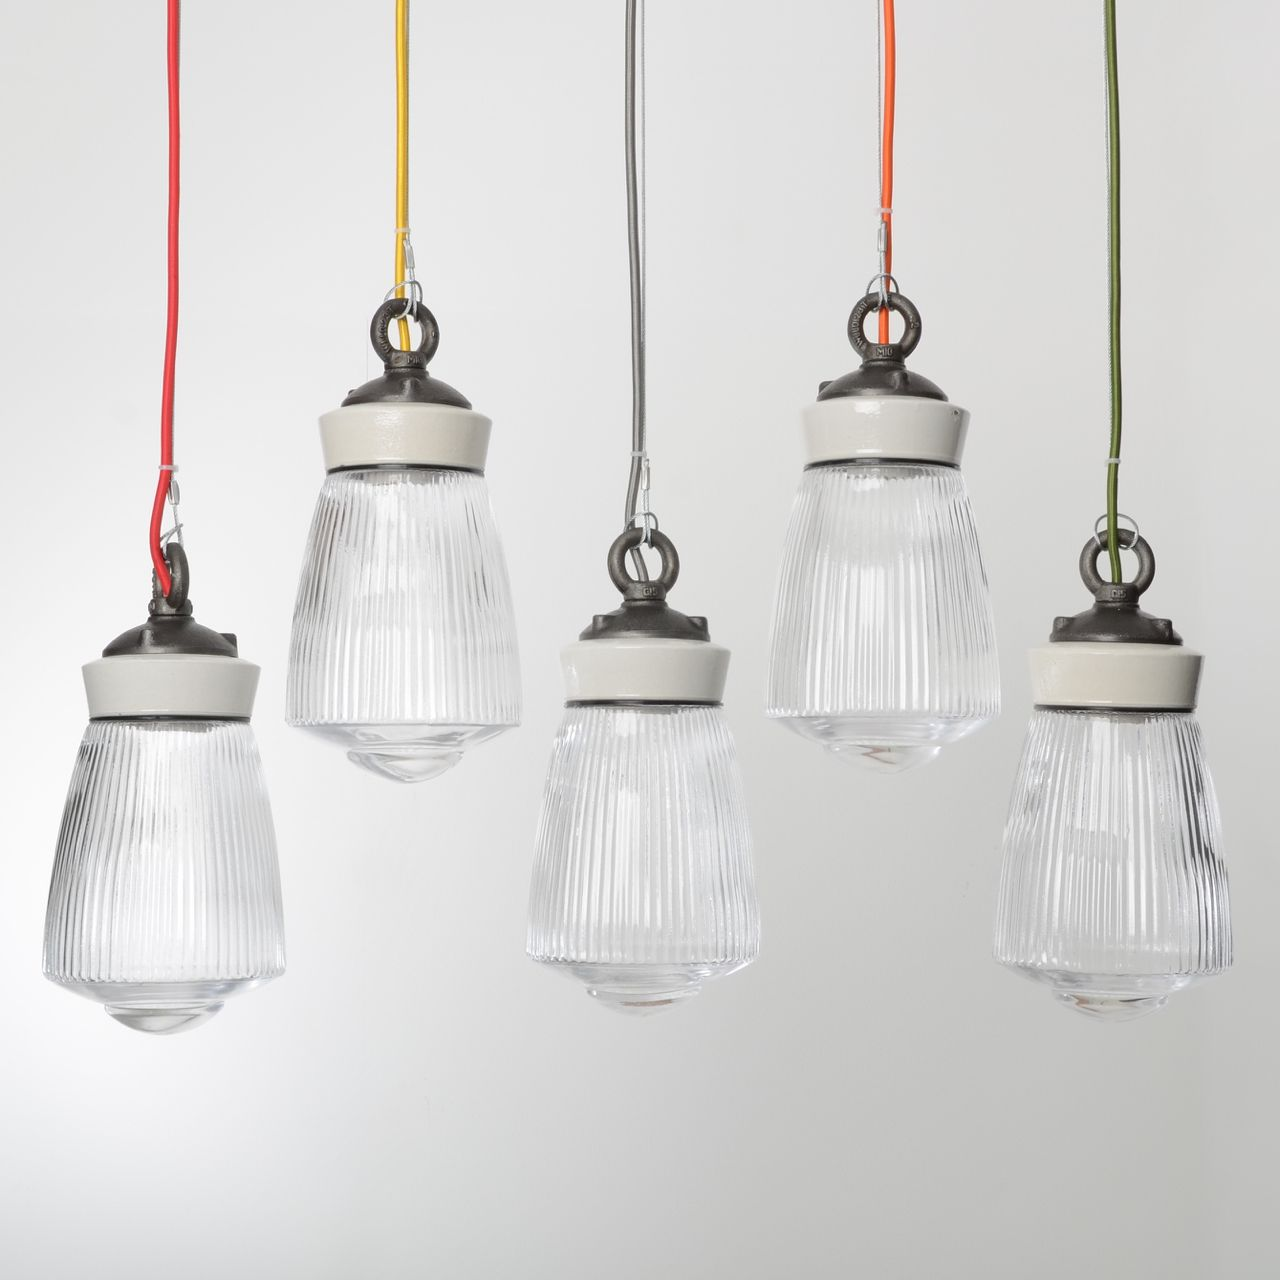 used pendant lighting. Communist Prismatic Pendant - We Have A Large Stock Of These Never-used Communist-era Lights, Discovered Tucked Away In The Stores Hungarian Used Lighting R